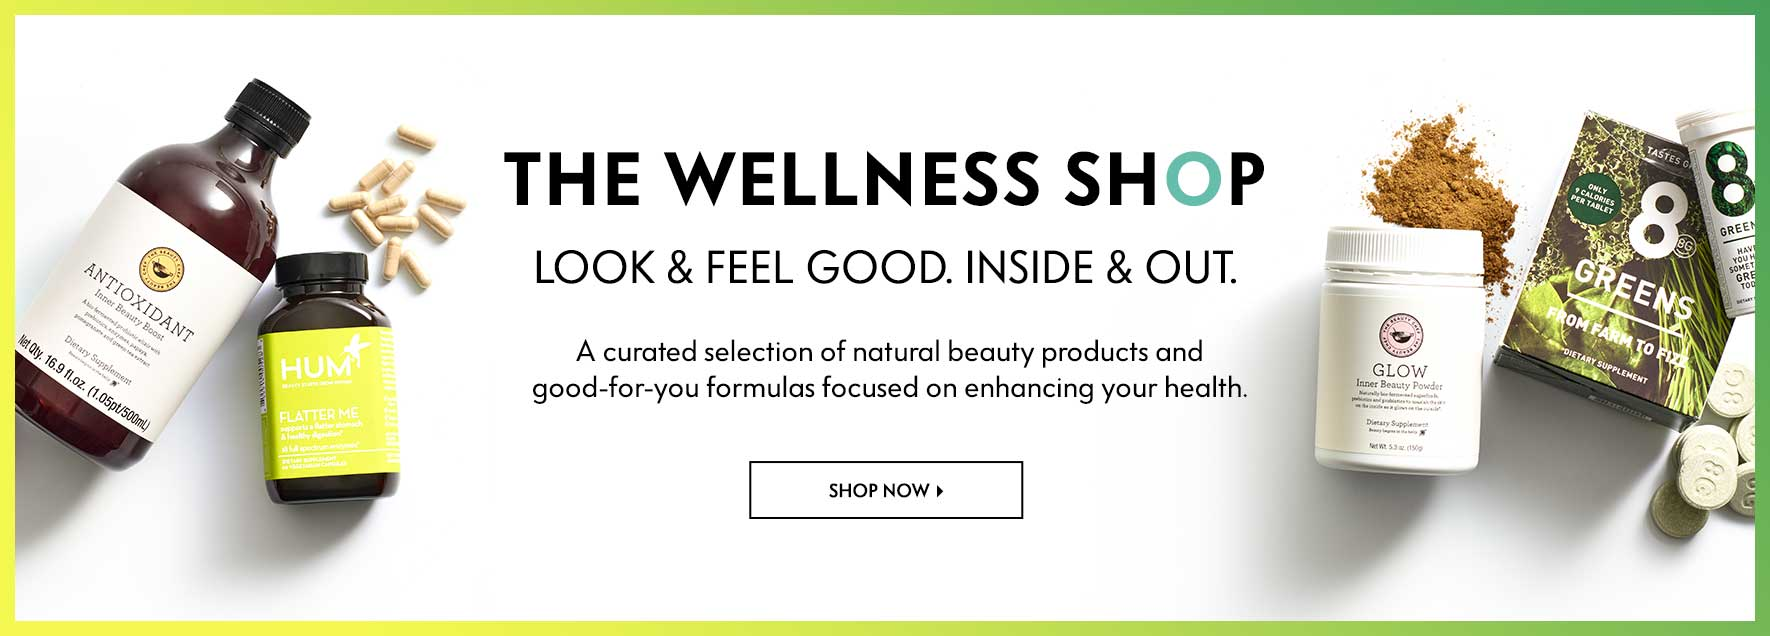 The Wellness Shop - Look & Feel Good. Inside & Out. A curated selection of natural beauty products and good-for-you formulas focused on enhancing your health.